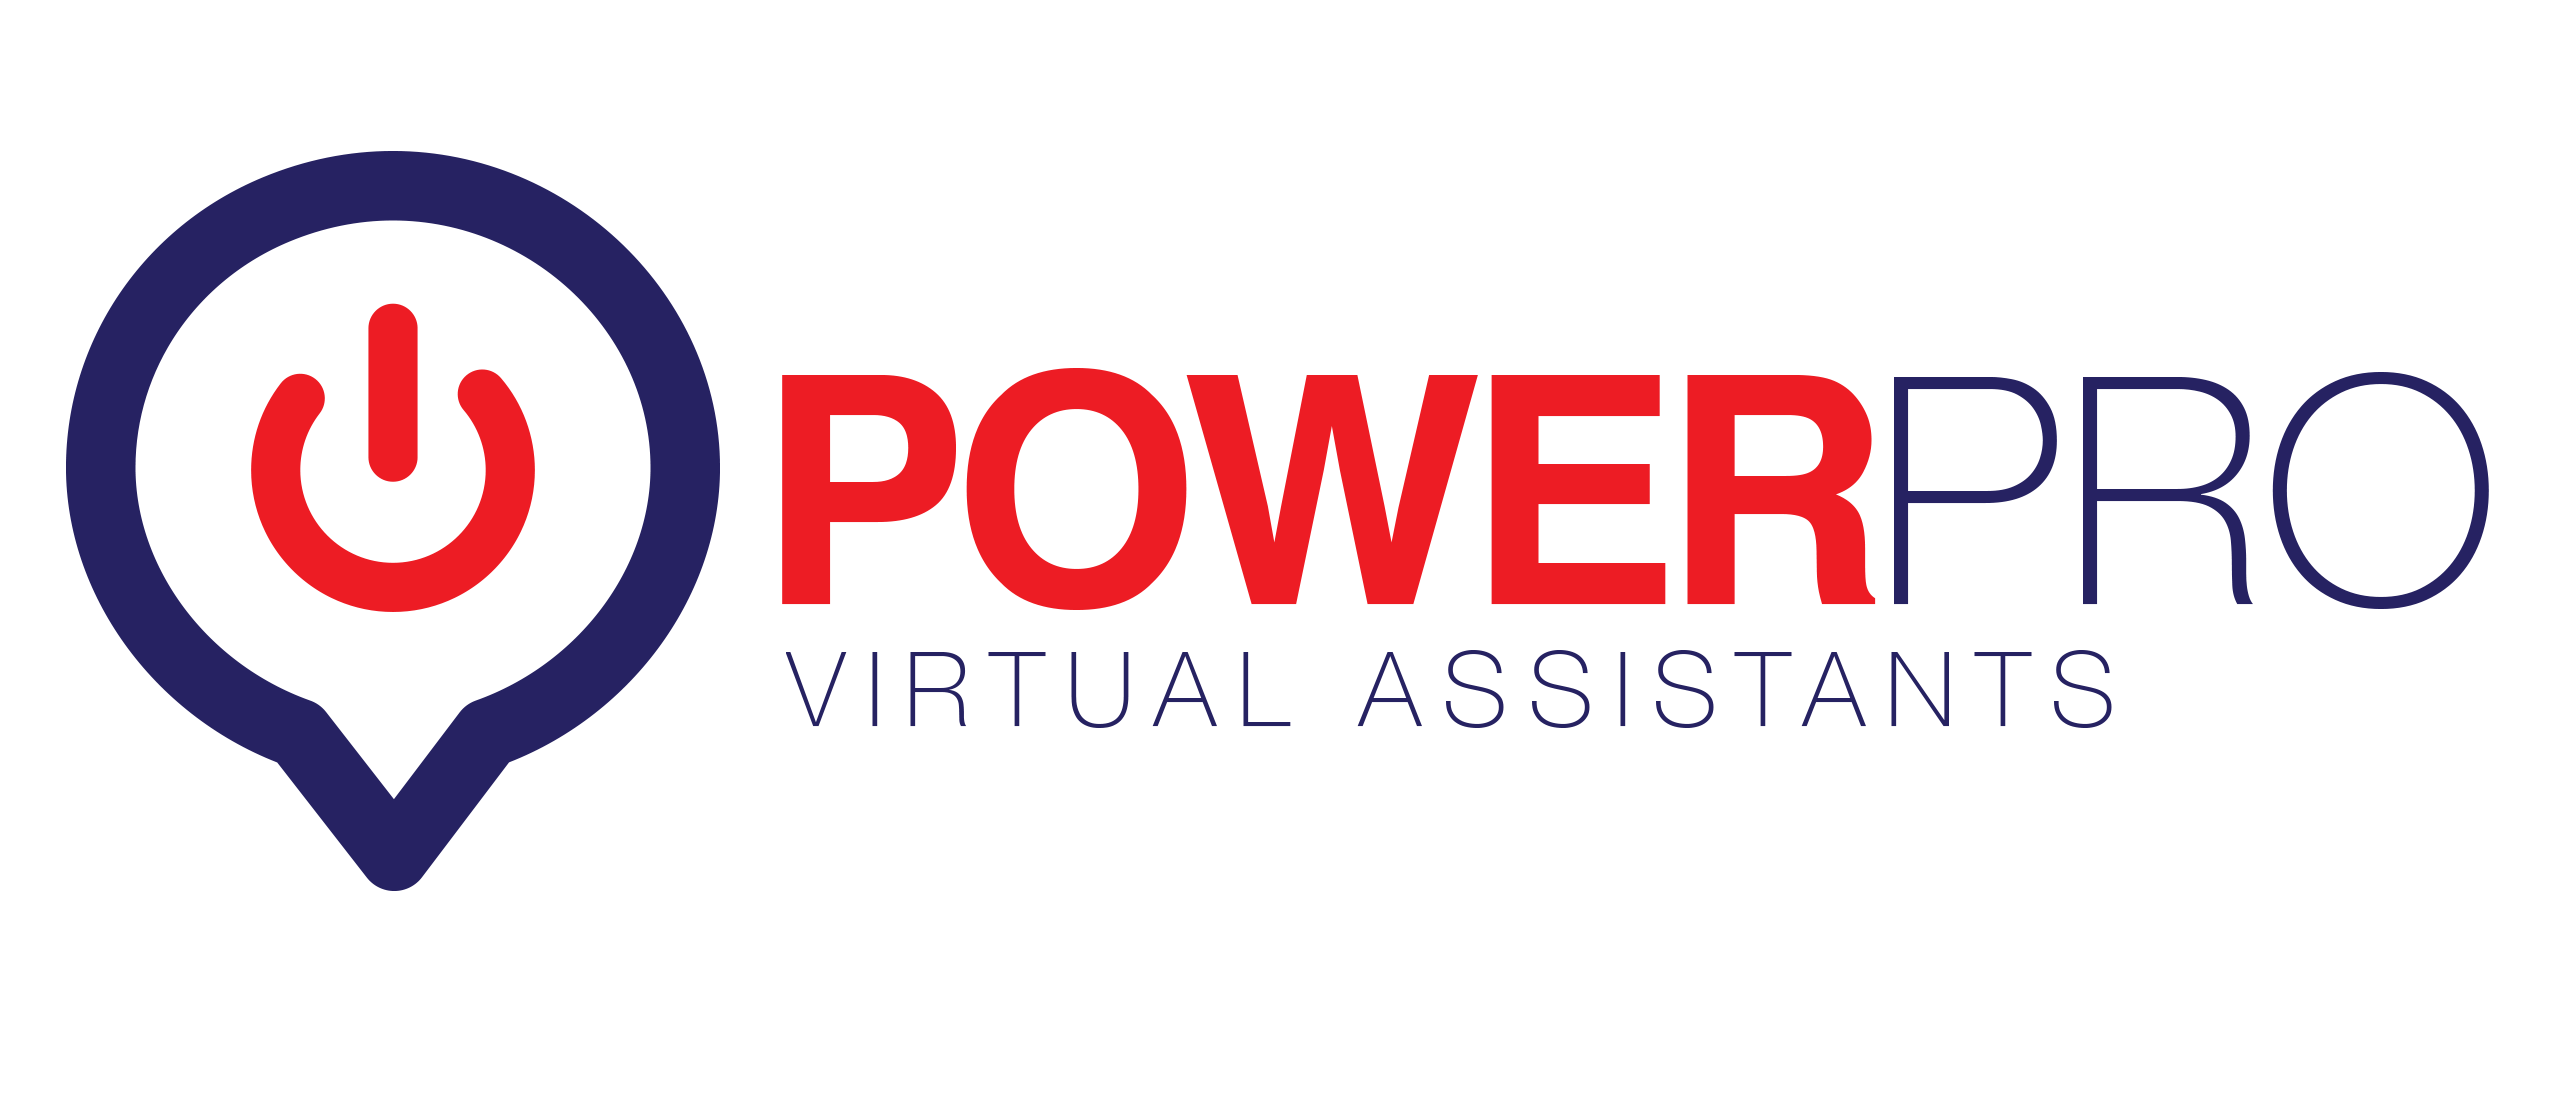 PowerPro Assistants Academy